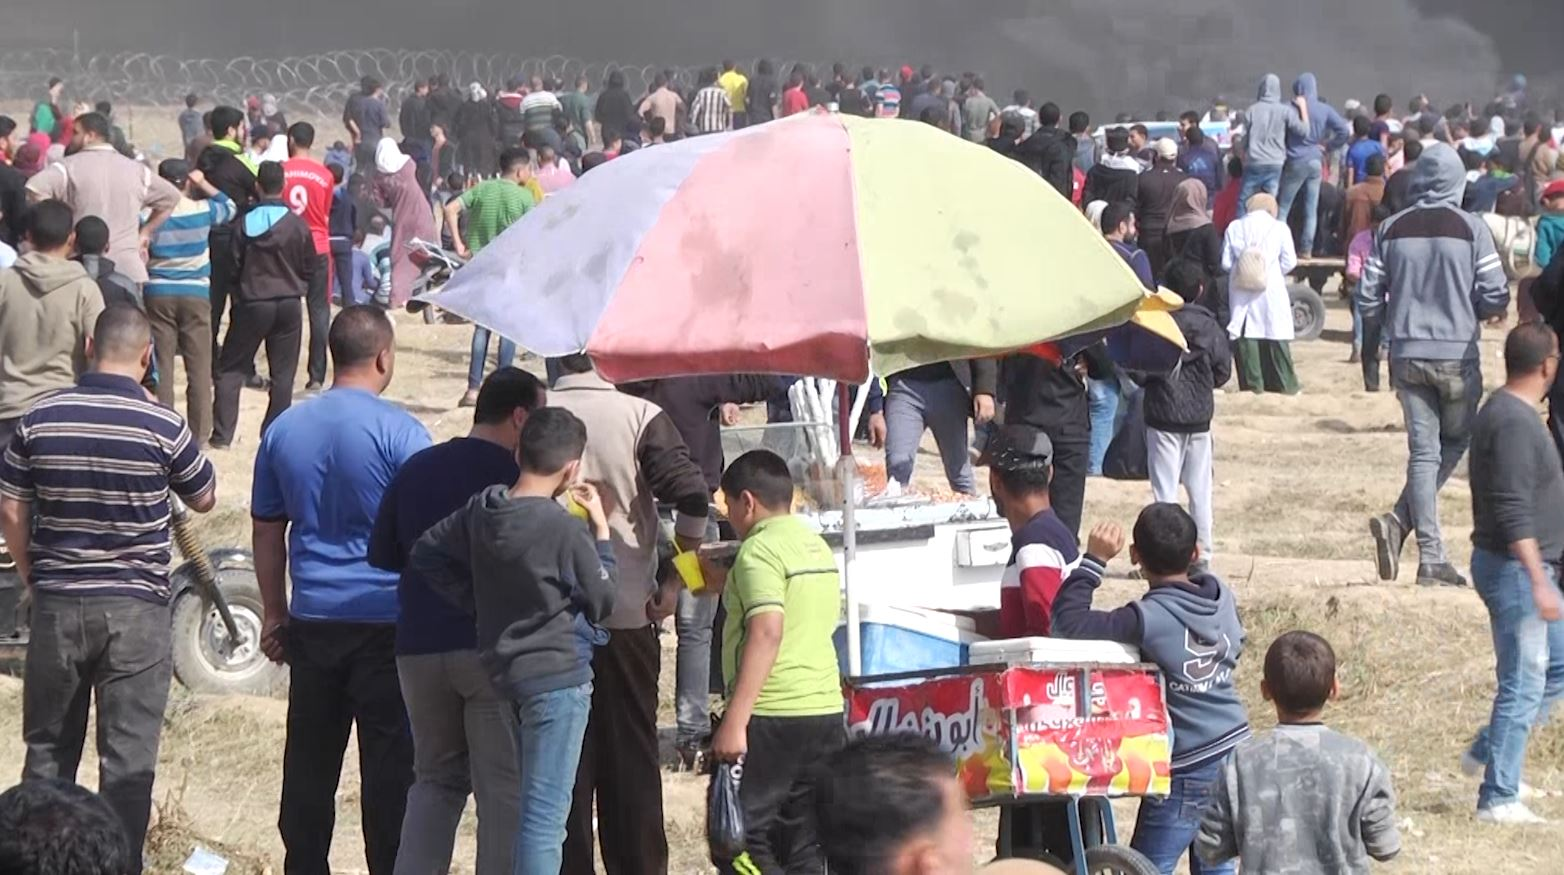 A vendor at the Great Return March in Gaza